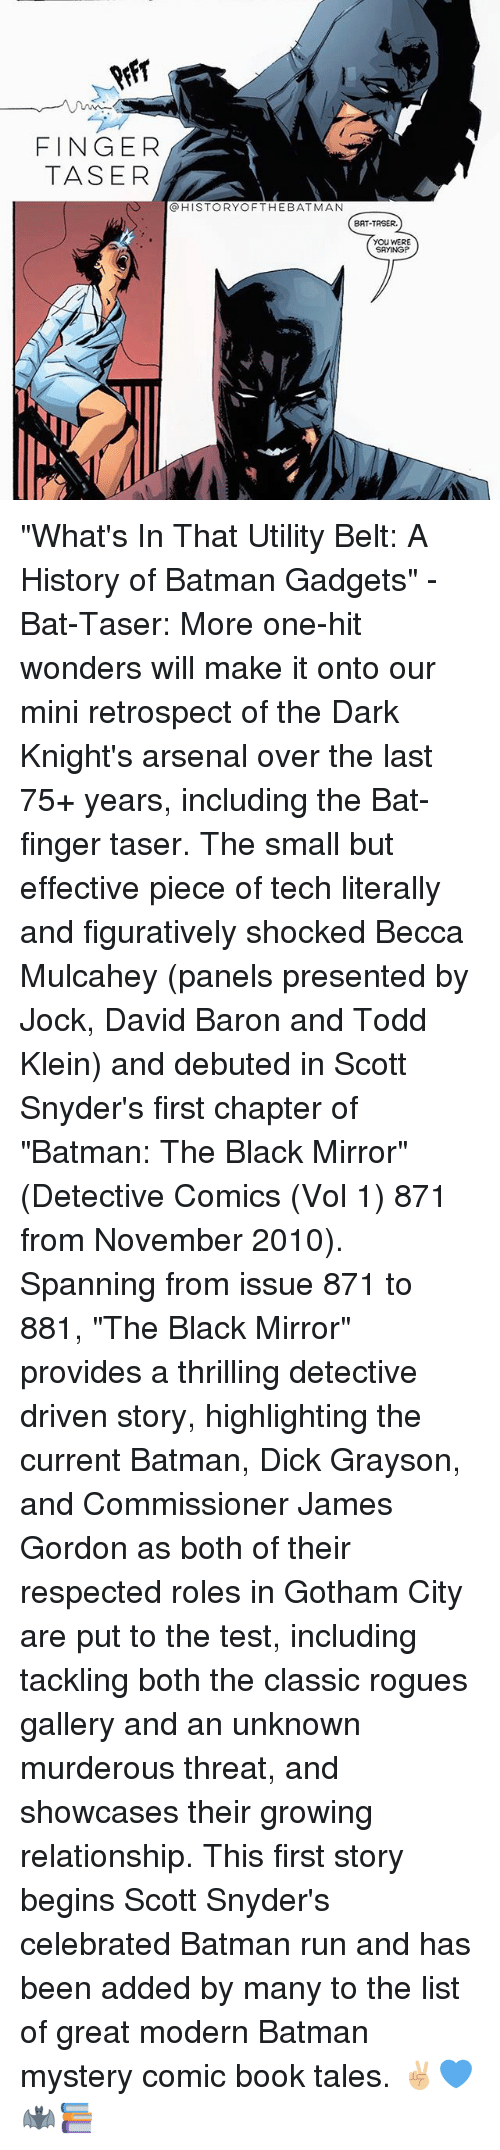 "vols: FINGER  TASER  @HISTORYOFTHEBATMAN  BAT-TASER.  YOU WERE  SAYING ""What's In That Utility Belt: A History of Batman Gadgets"" - Bat-Taser: More one-hit wonders will make it onto our mini retrospect of the Dark Knight's arsenal over the last 75+ years, including the Bat-finger taser. The small but effective piece of tech literally and figuratively shocked Becca Mulcahey (panels presented by Jock, David Baron and Todd Klein) and debuted in Scott Snyder's first chapter of ""Batman: The Black Mirror"" (Detective Comics (Vol 1) 871 from November 2010). Spanning from issue 871 to 881, ""The Black Mirror"" provides a thrilling detective driven story, highlighting the current Batman, Dick Grayson, and Commissioner James Gordon as both of their respected roles in Gotham City are put to the test, including tackling both the classic rogues gallery and an unknown murderous threat, and showcases their growing relationship. This first story begins Scott Snyder's celebrated Batman run and has been added by many to the list of great modern Batman mystery comic book tales. ✌🏼💙🦇📚"